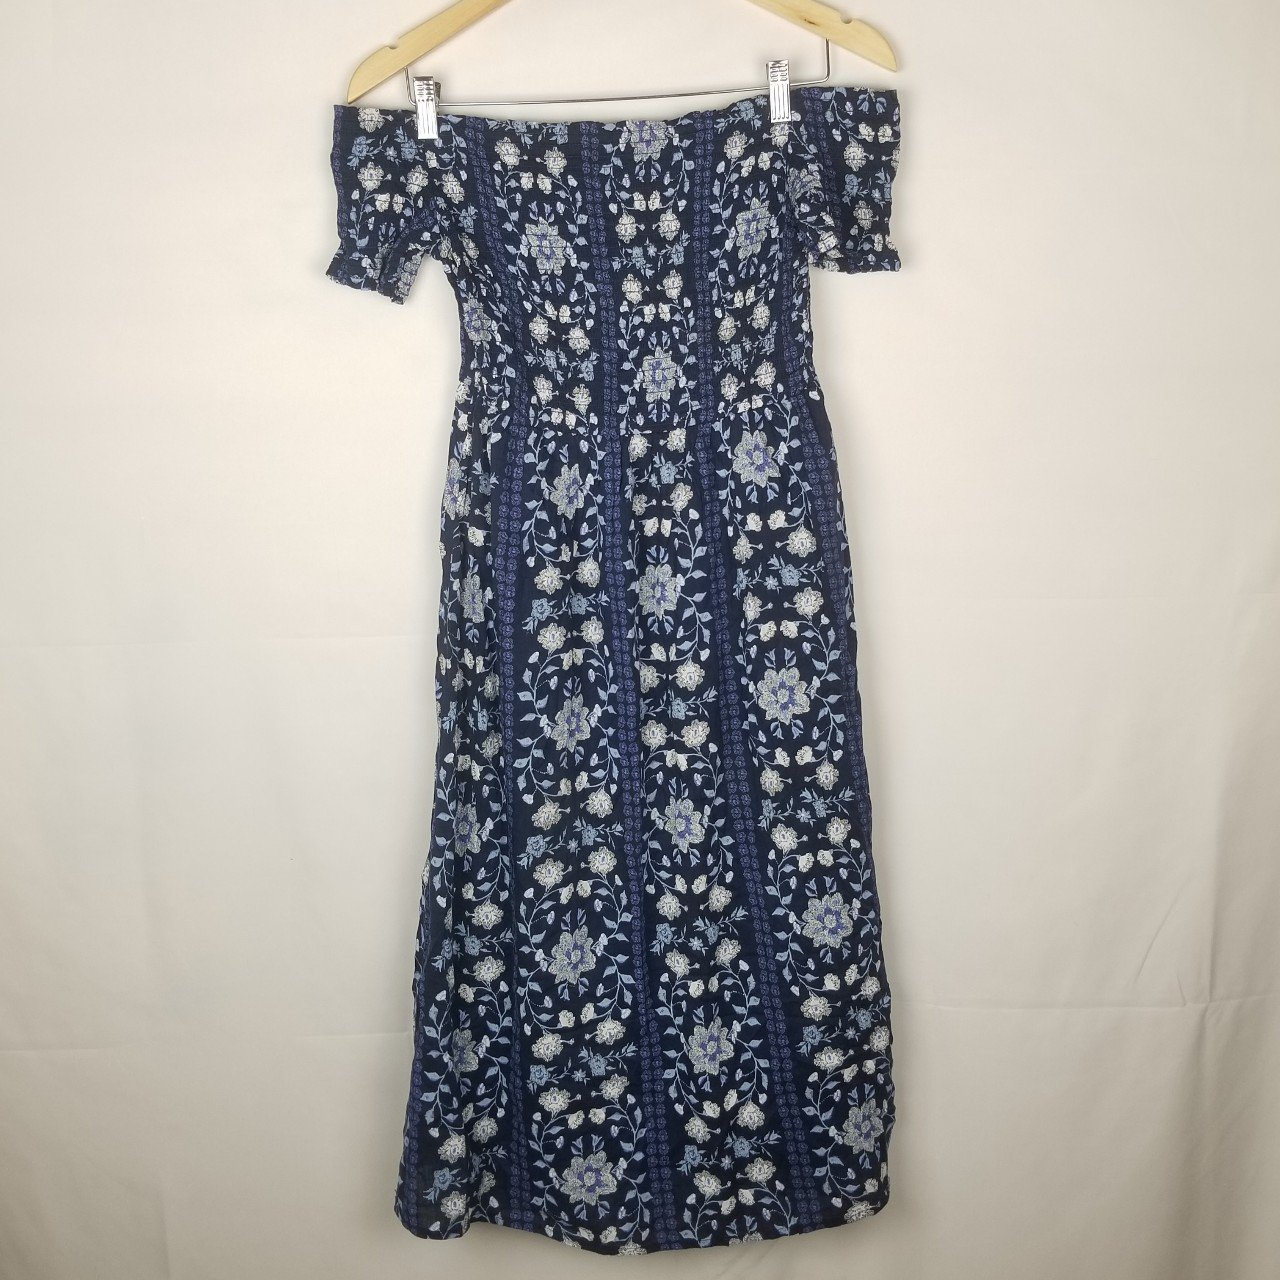 0d27700c00 Sun Dresses At Old Navy - Gomes Weine AG